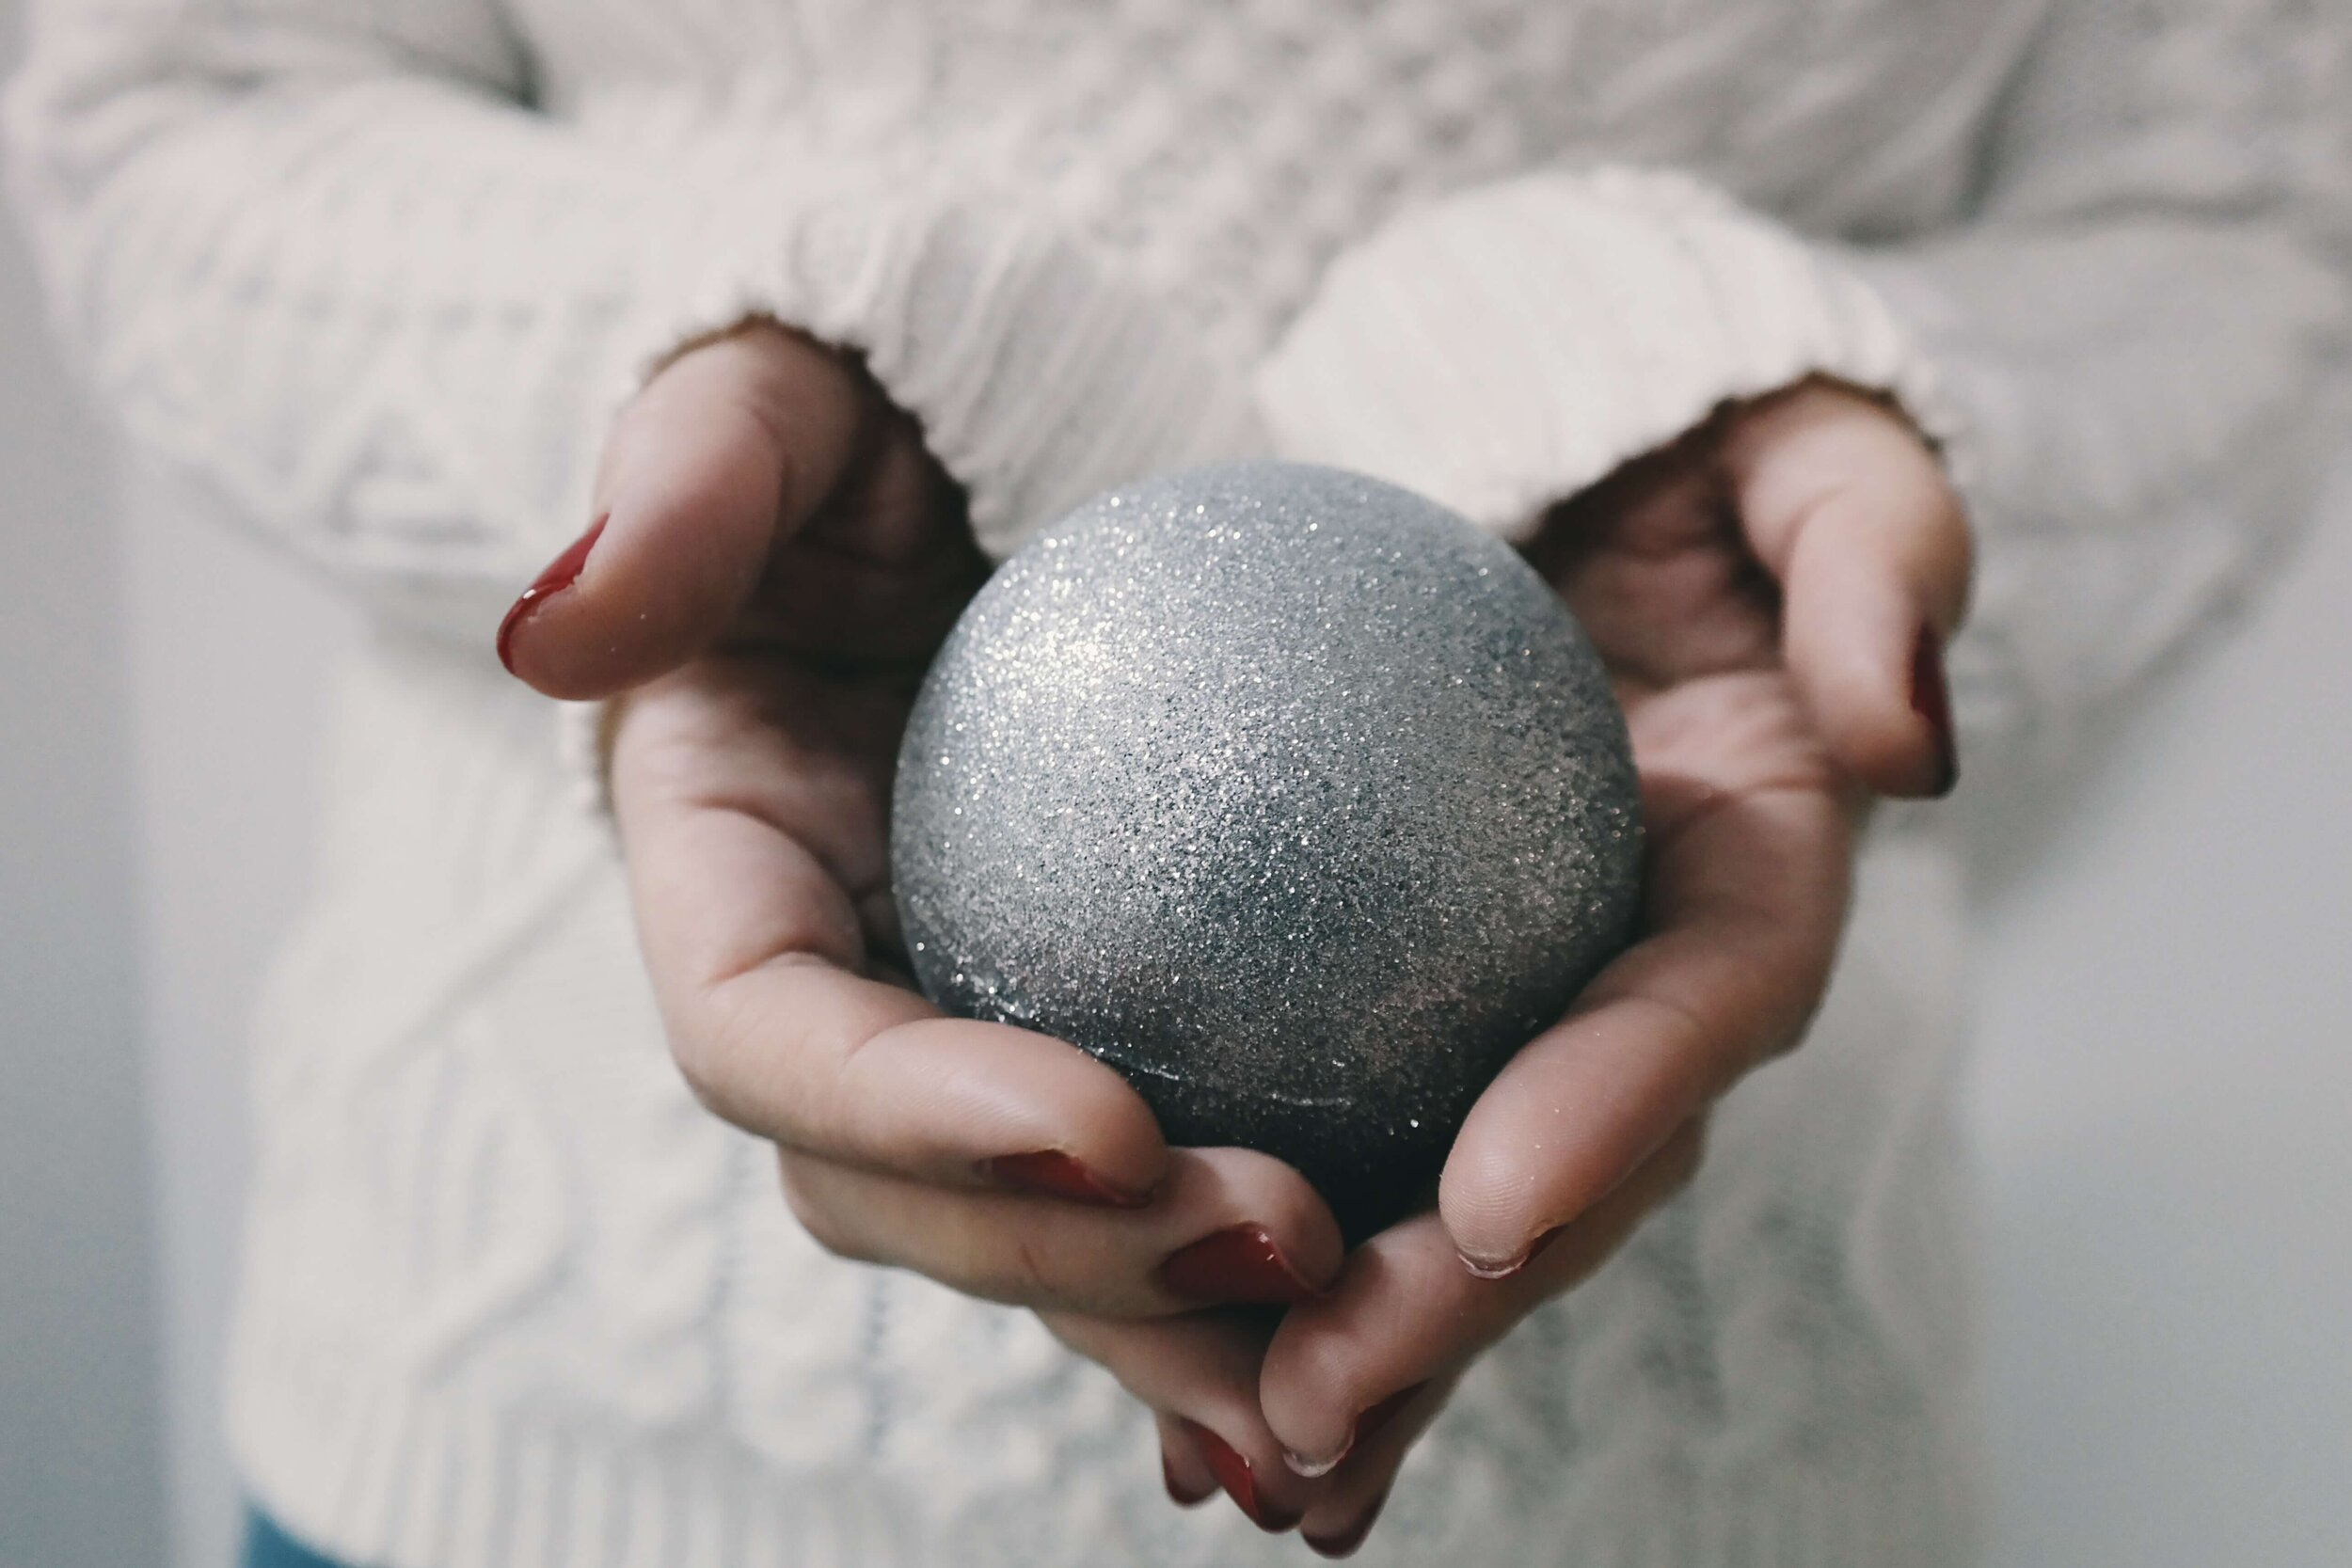 debt free holiday, debt free christmas, stress free, guilt free holiday season, debt free holiday challenge, gift ideas, christmas budget, gift budget, saving for christmas, how to save for the holidays, how do i start saving for christmas, debt free holiday tips, avoid holiday overspending